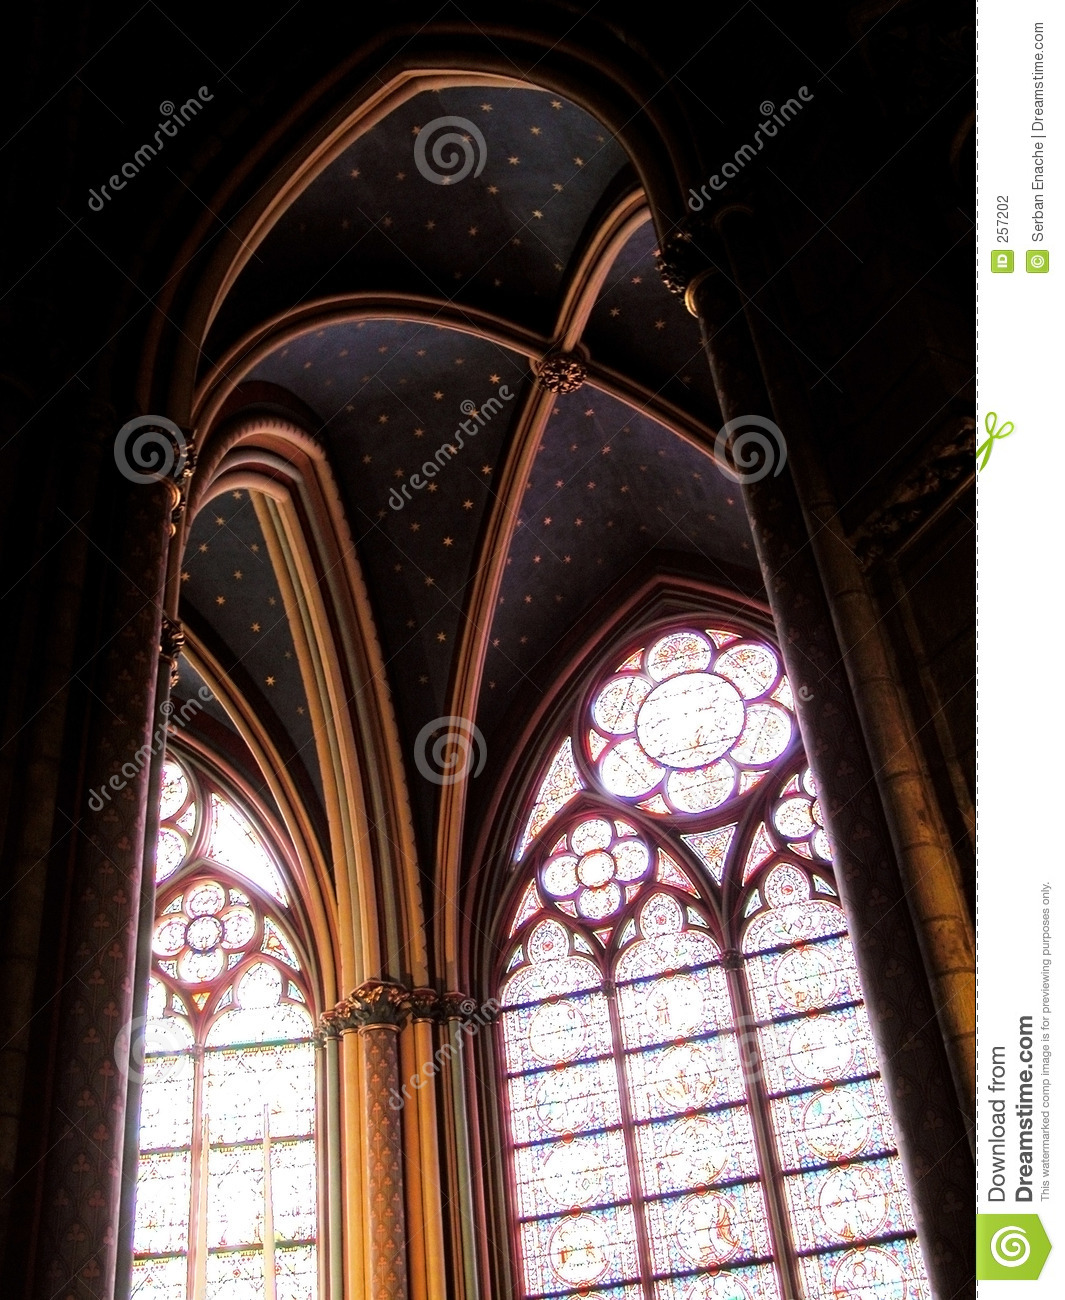 Gothic arches in the church of notre dame in paris france